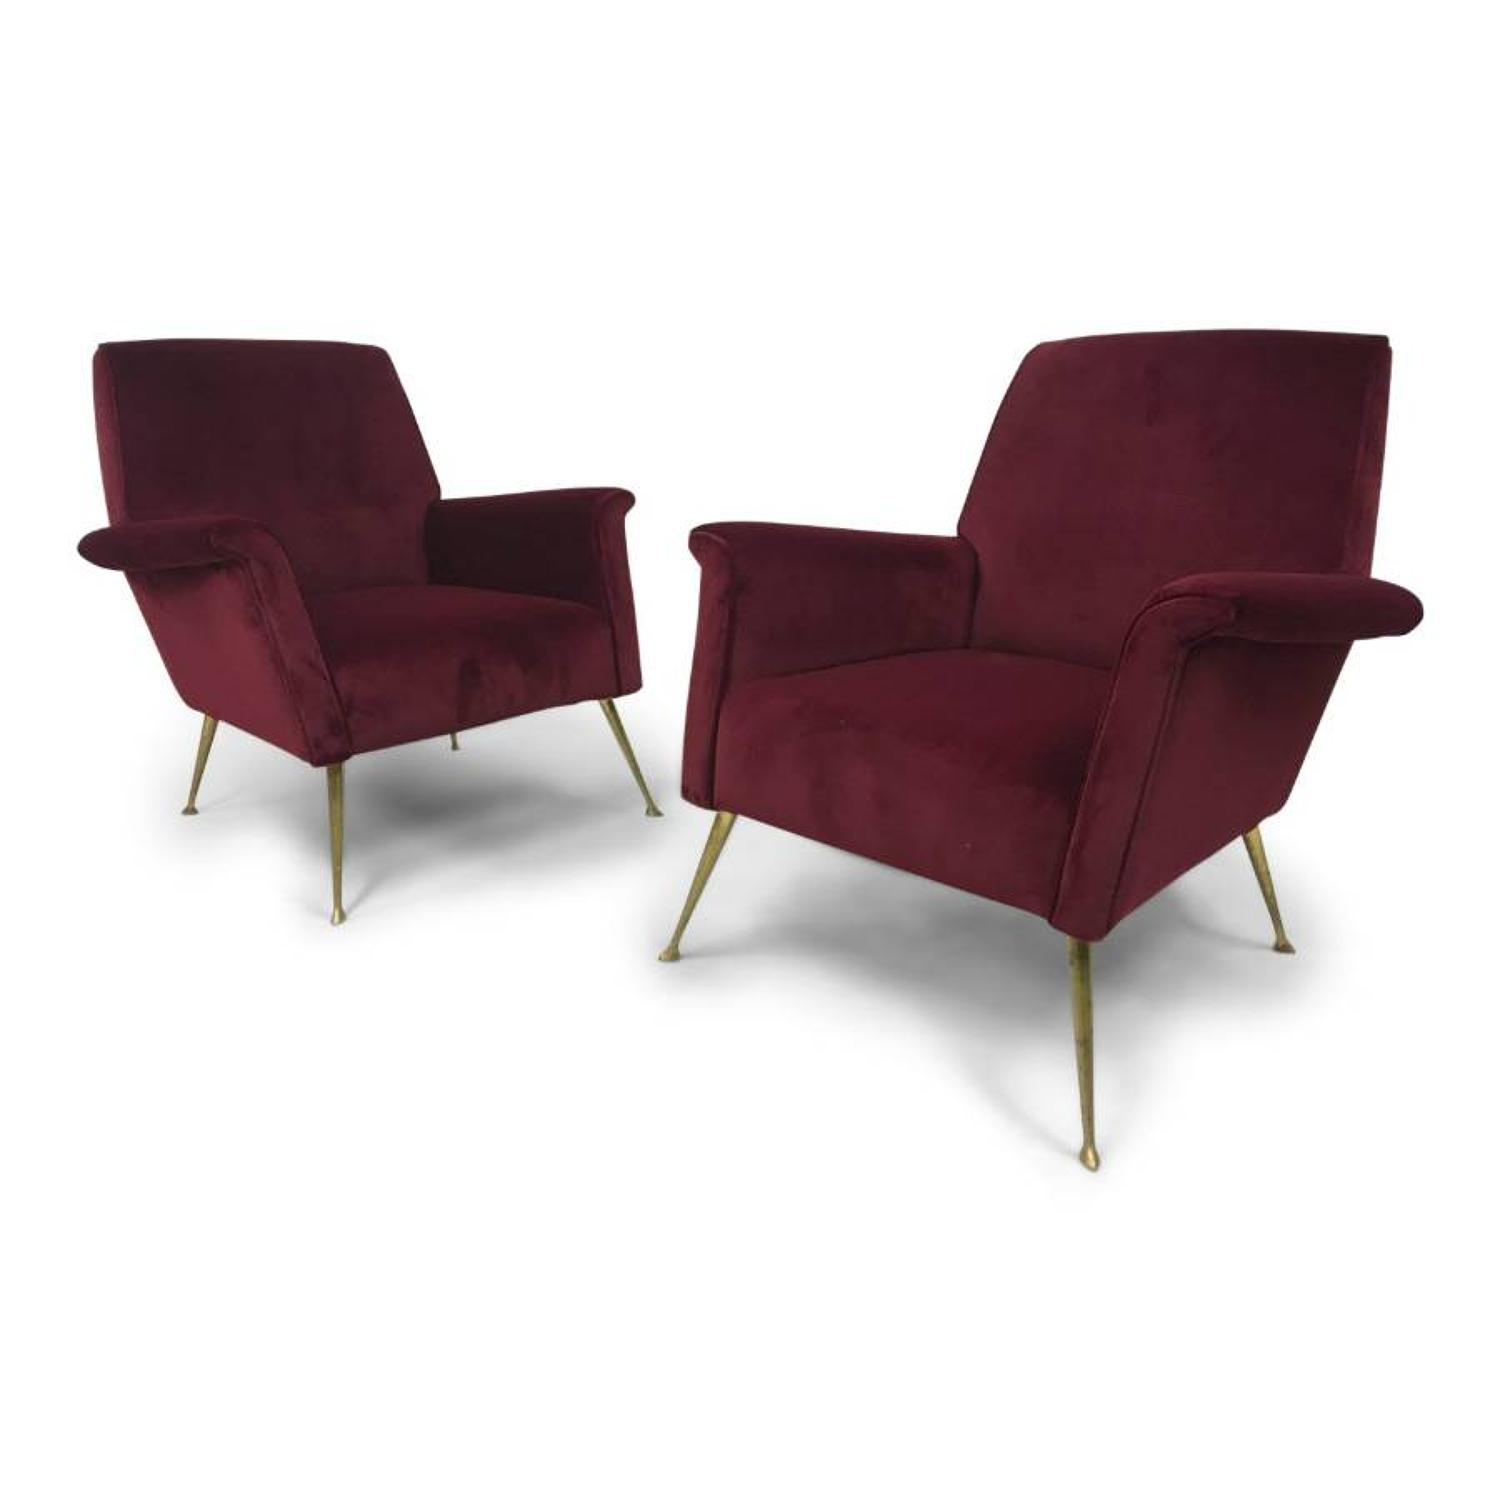 A pair of 1960s Italian armchairs in velvet